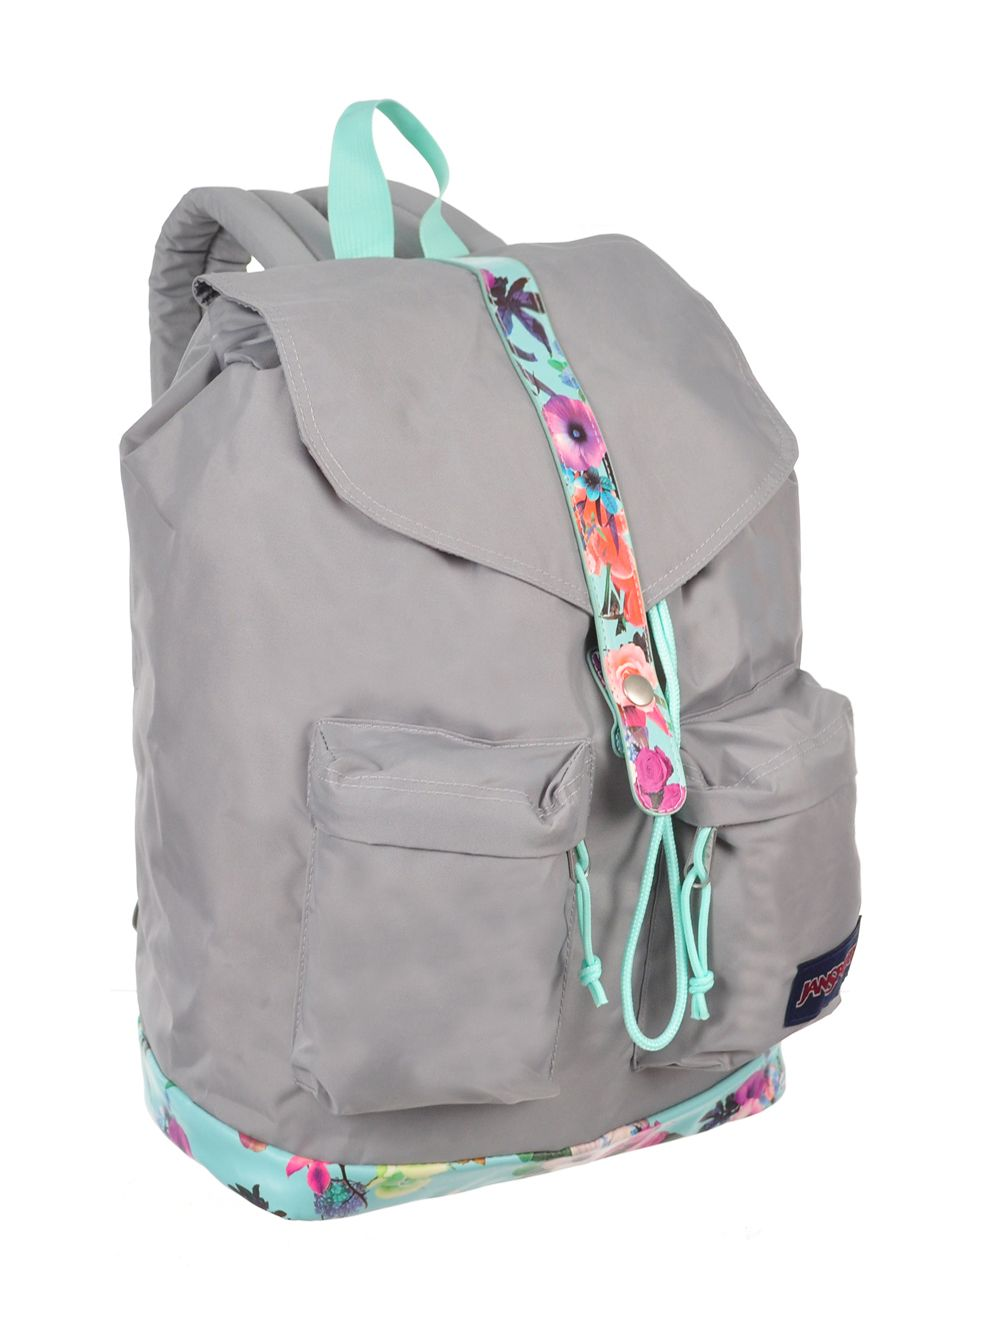 8d8982f1fc15 Jansport Madalyn Backpack